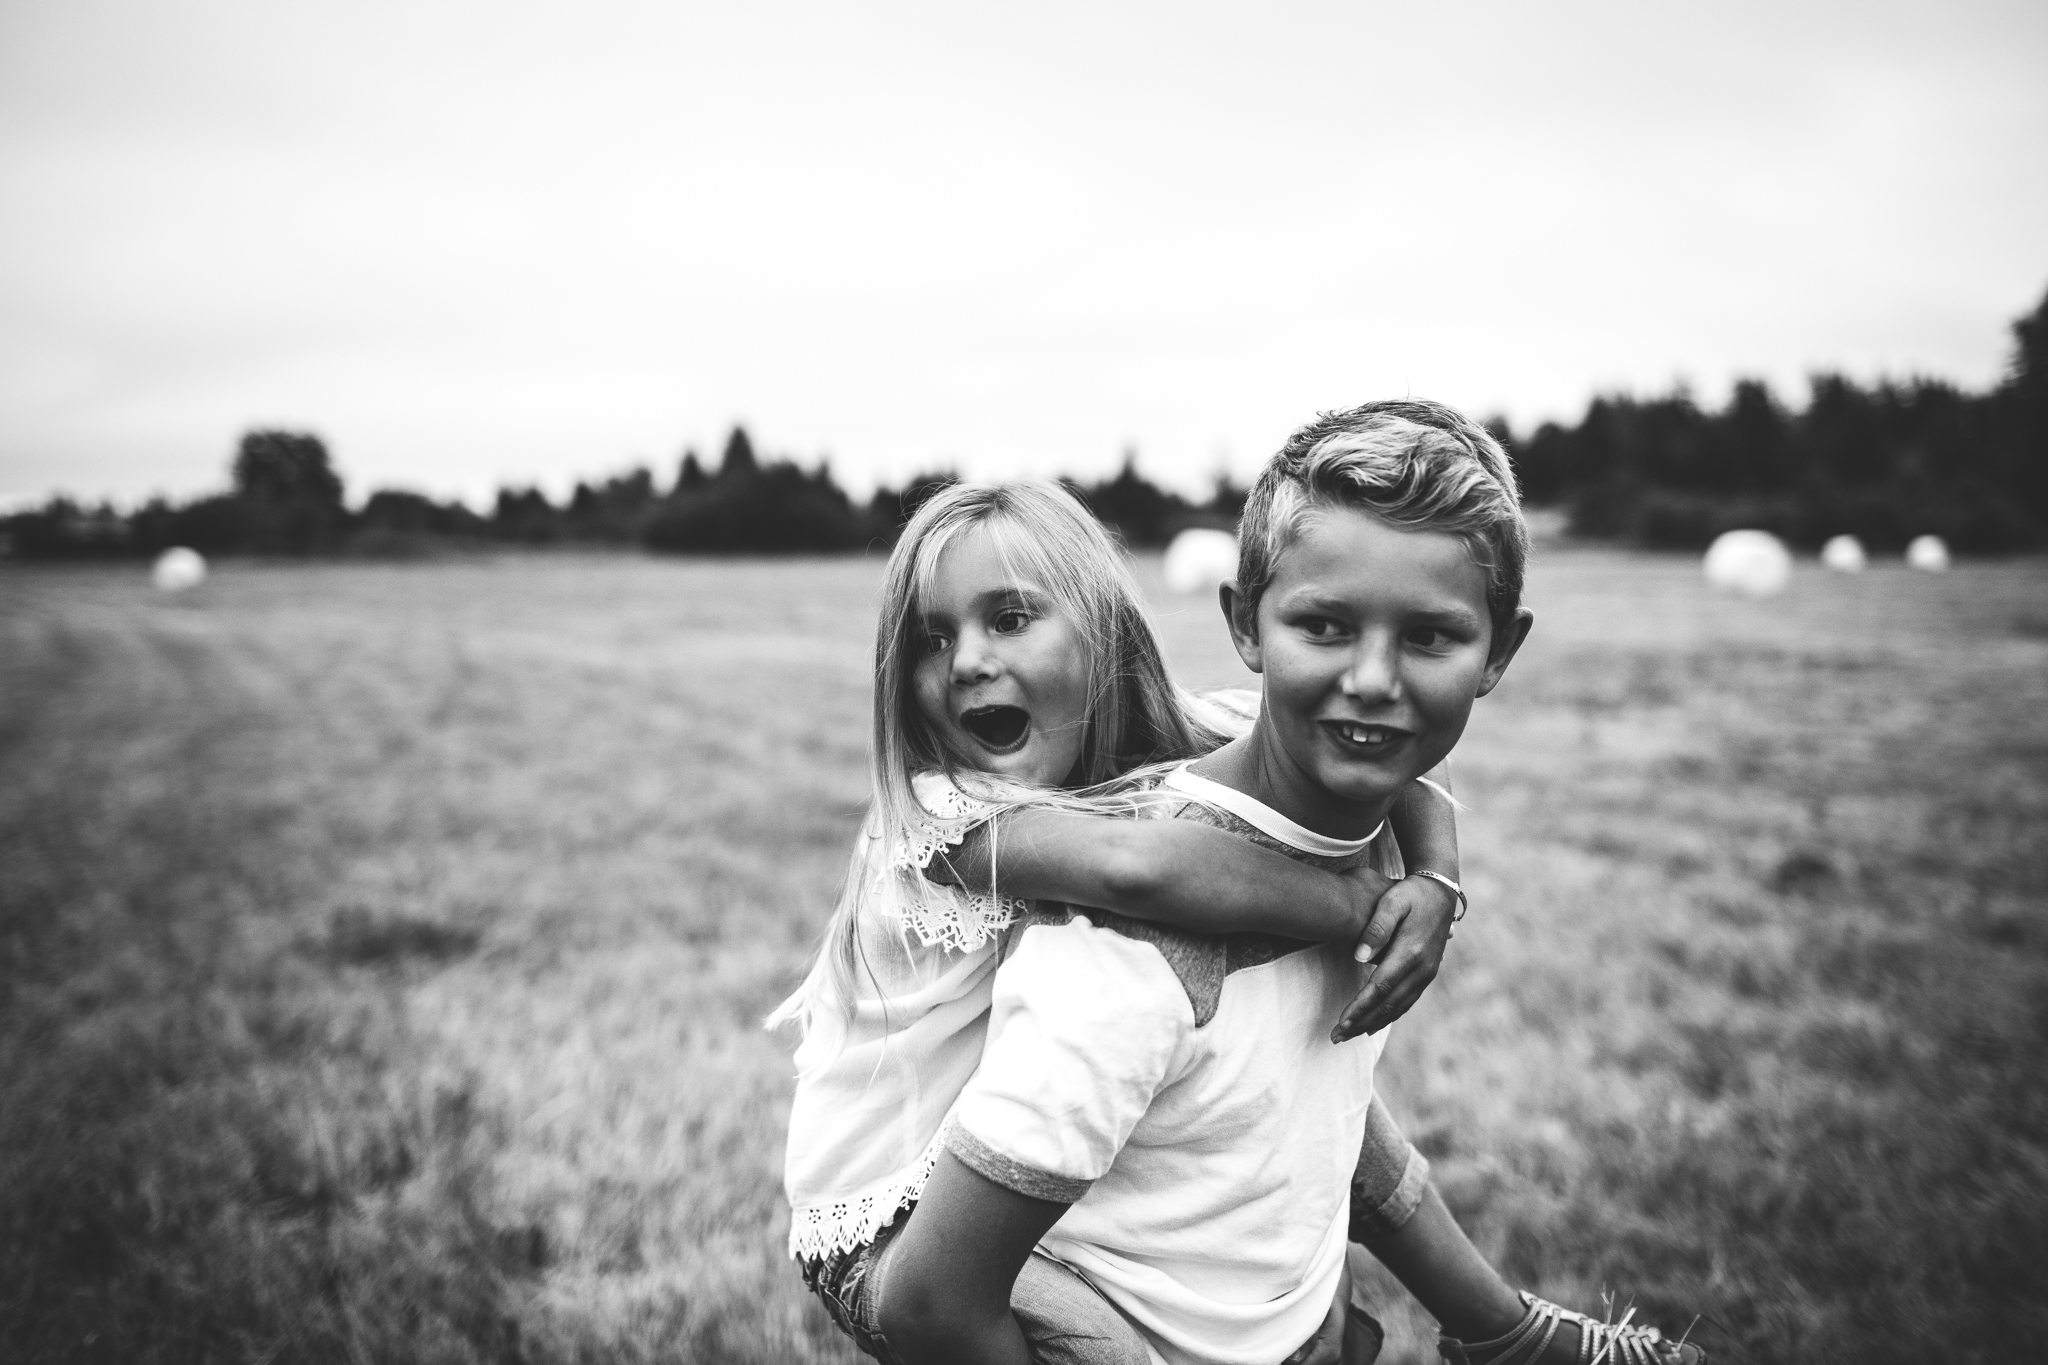 Outdoor Family Session in Seattle Washington. | Photo by Dannie Melissa Wit of Abeille Photography. abeillephotography.com | Seattle Portrait Photographer | emotional family photos | connection | Lovely portrait | sibling portraits | documentary | Raw natural beauty | Inspiration | Mother and daughter | Father and son | brother and sister | Pacific Northwest | Real | Day in the life | life photography | artistic lifestyle photography | Photographs | Document the journey | Natural light